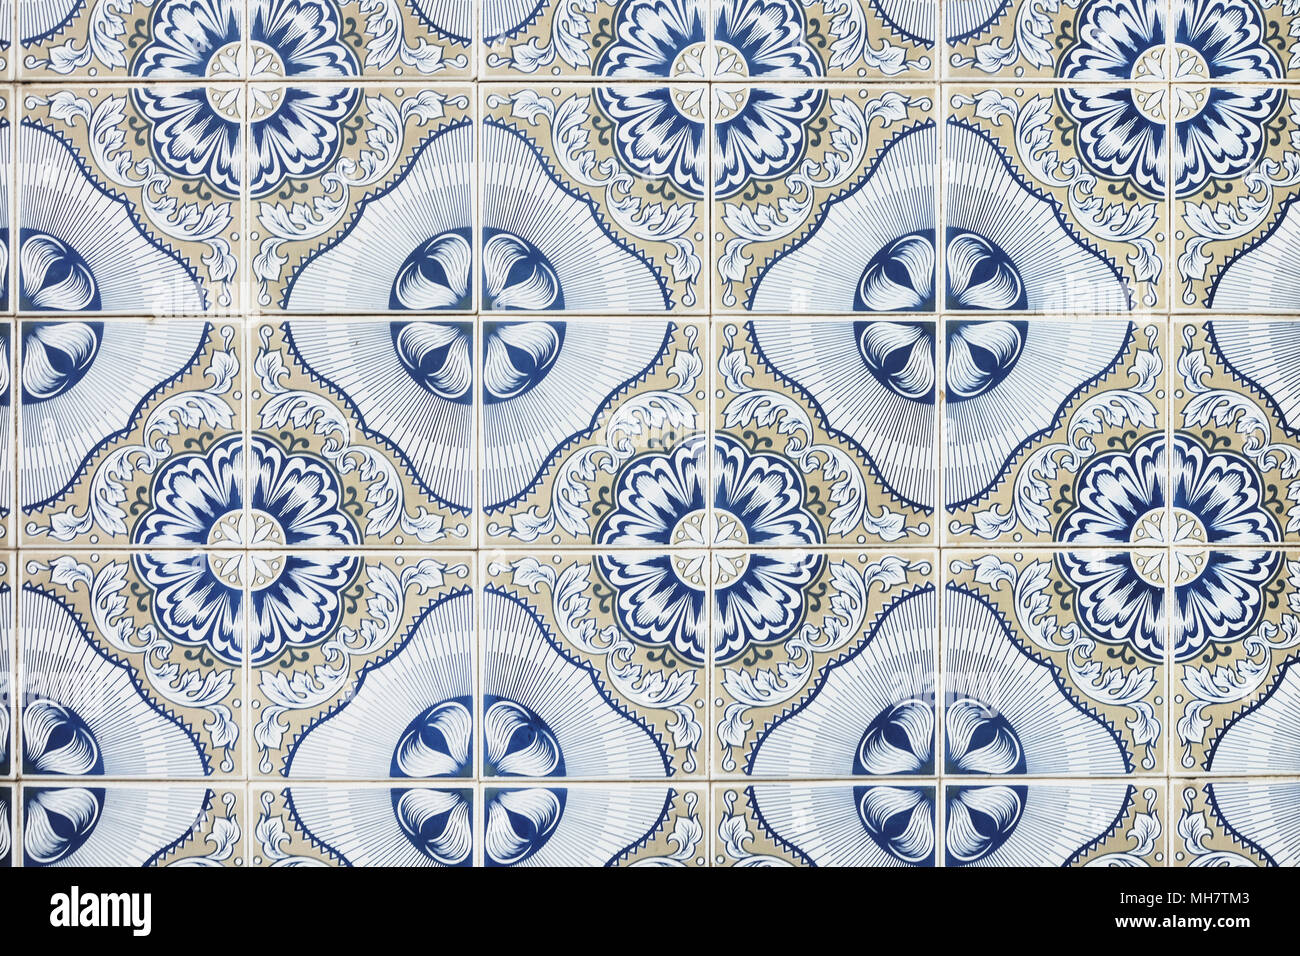 Typical portuguese decorations on a wall with colored ceramic tiles typical portuguese decorations on a wall with colored ceramic tiles traditional mosaic tiles azulejos dailygadgetfo Images